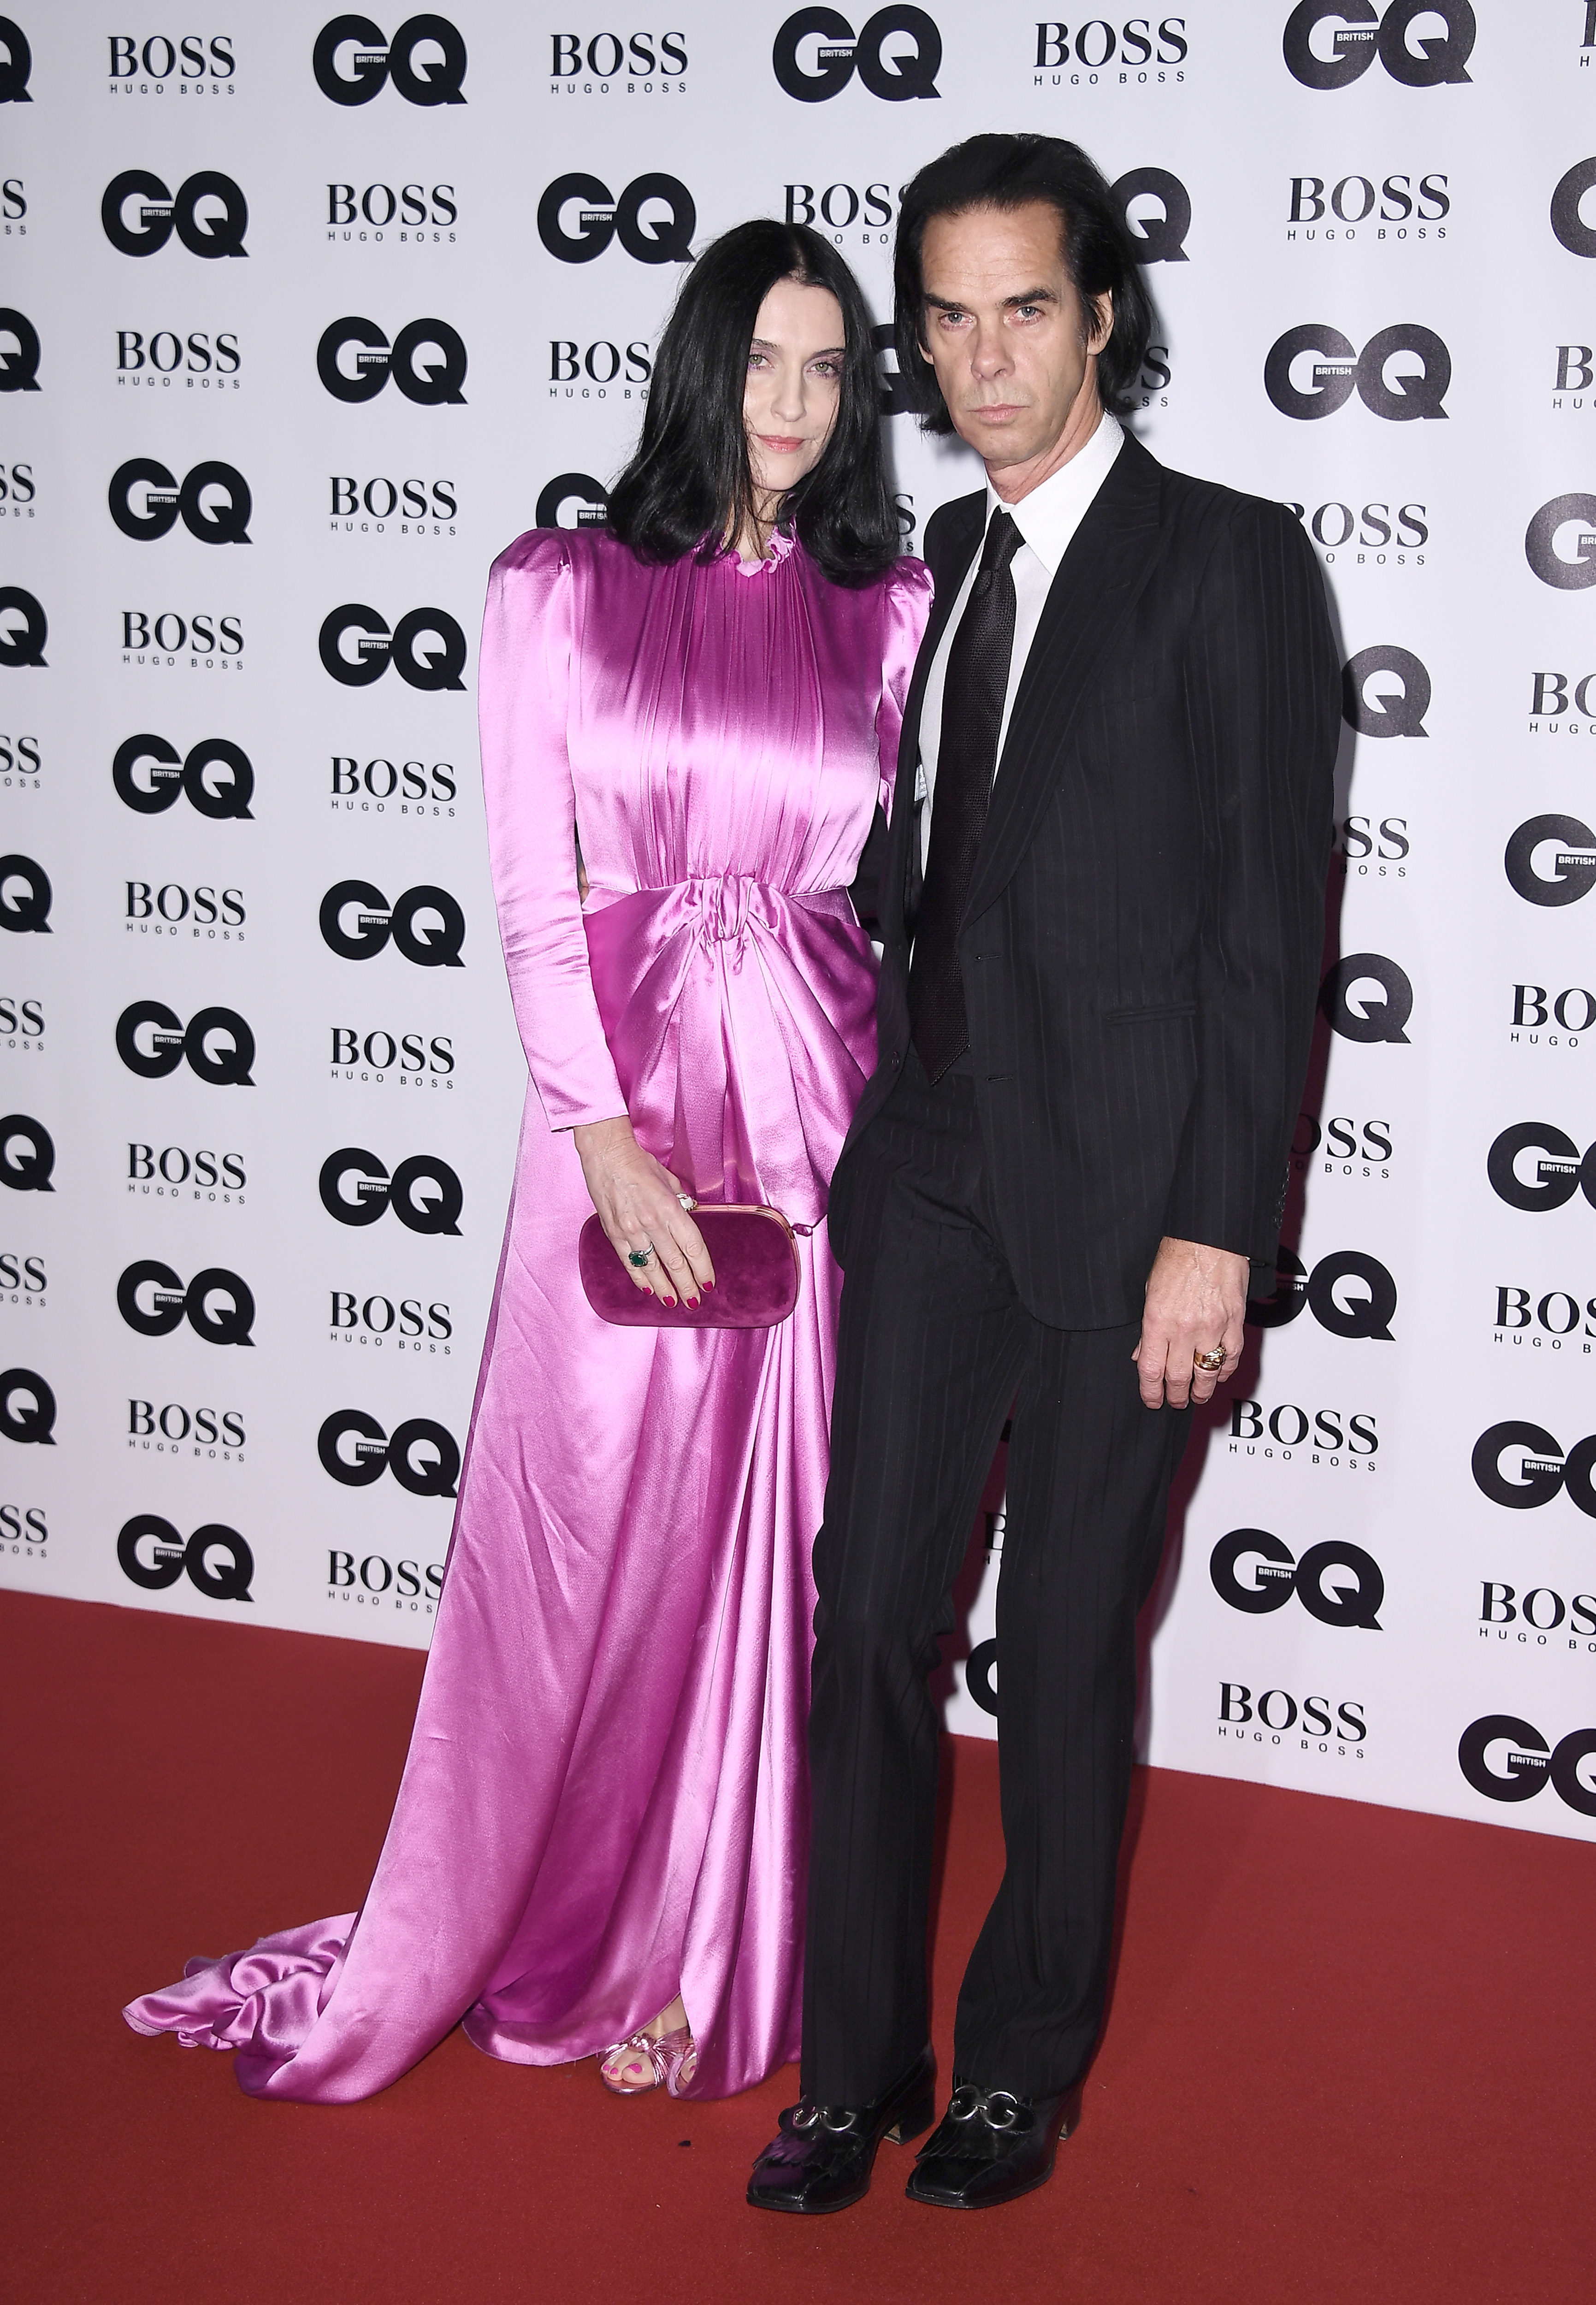 LONDON, ENGLAND - SEPTEMBER 05:  Susie Bick (L) and Nick Cave attend the GQ Men Of The Year Awards at the Tate Modern on September 5, 2017 in London, England.  (Photo by Gareth Cattermole/Getty Images)